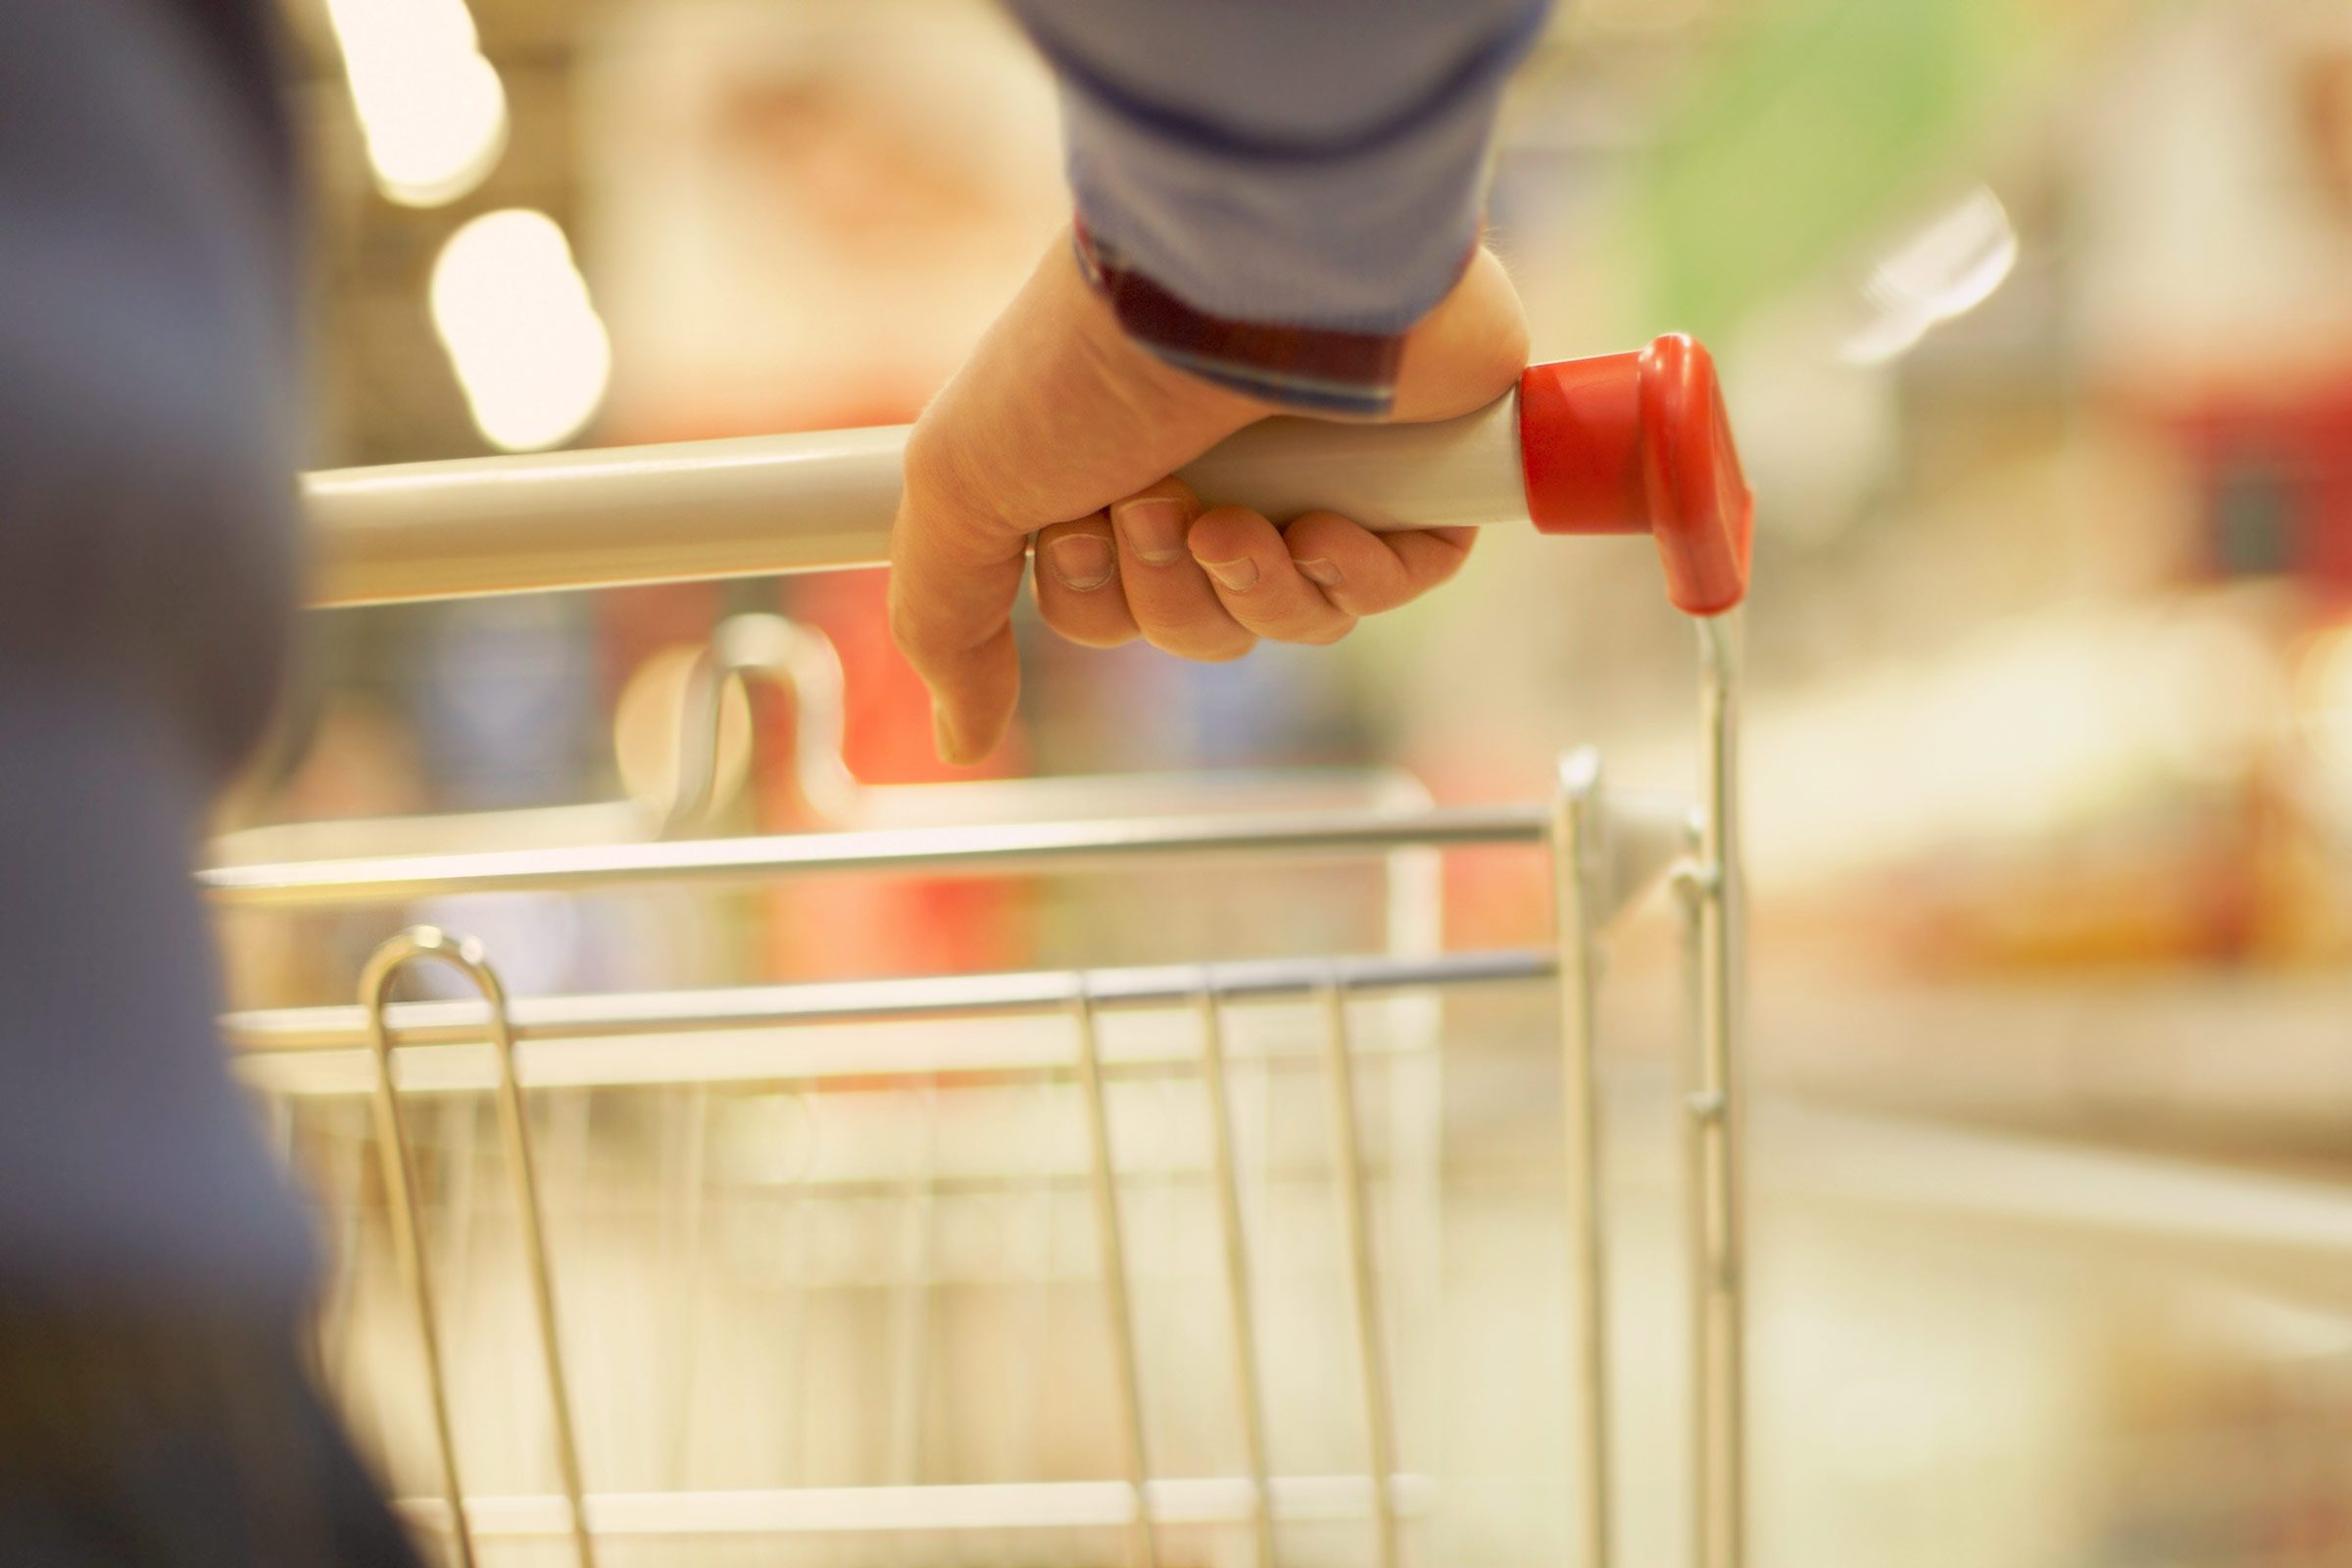 86% Don't Disinfect Shopping Carts